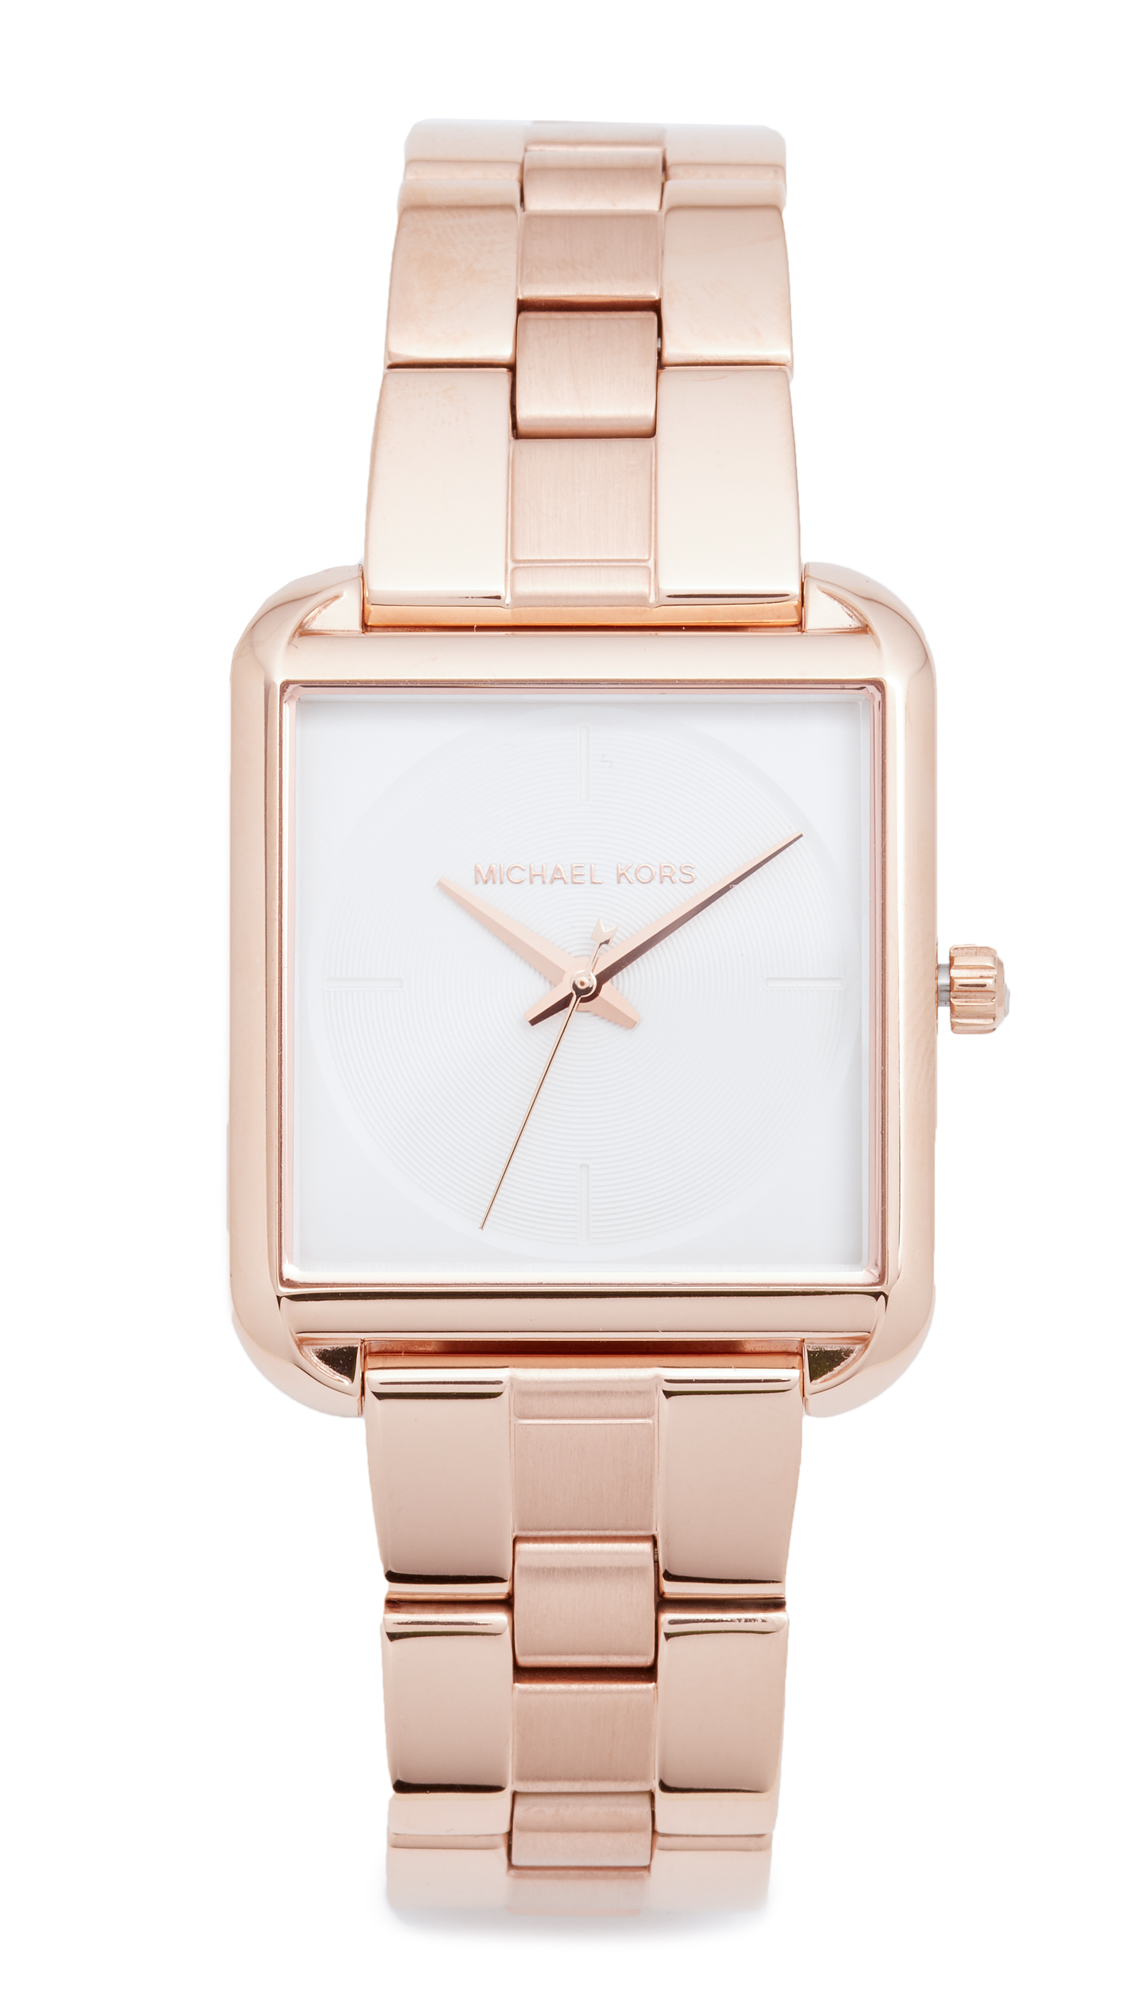 michael kors female michael kors lake watch rose gold